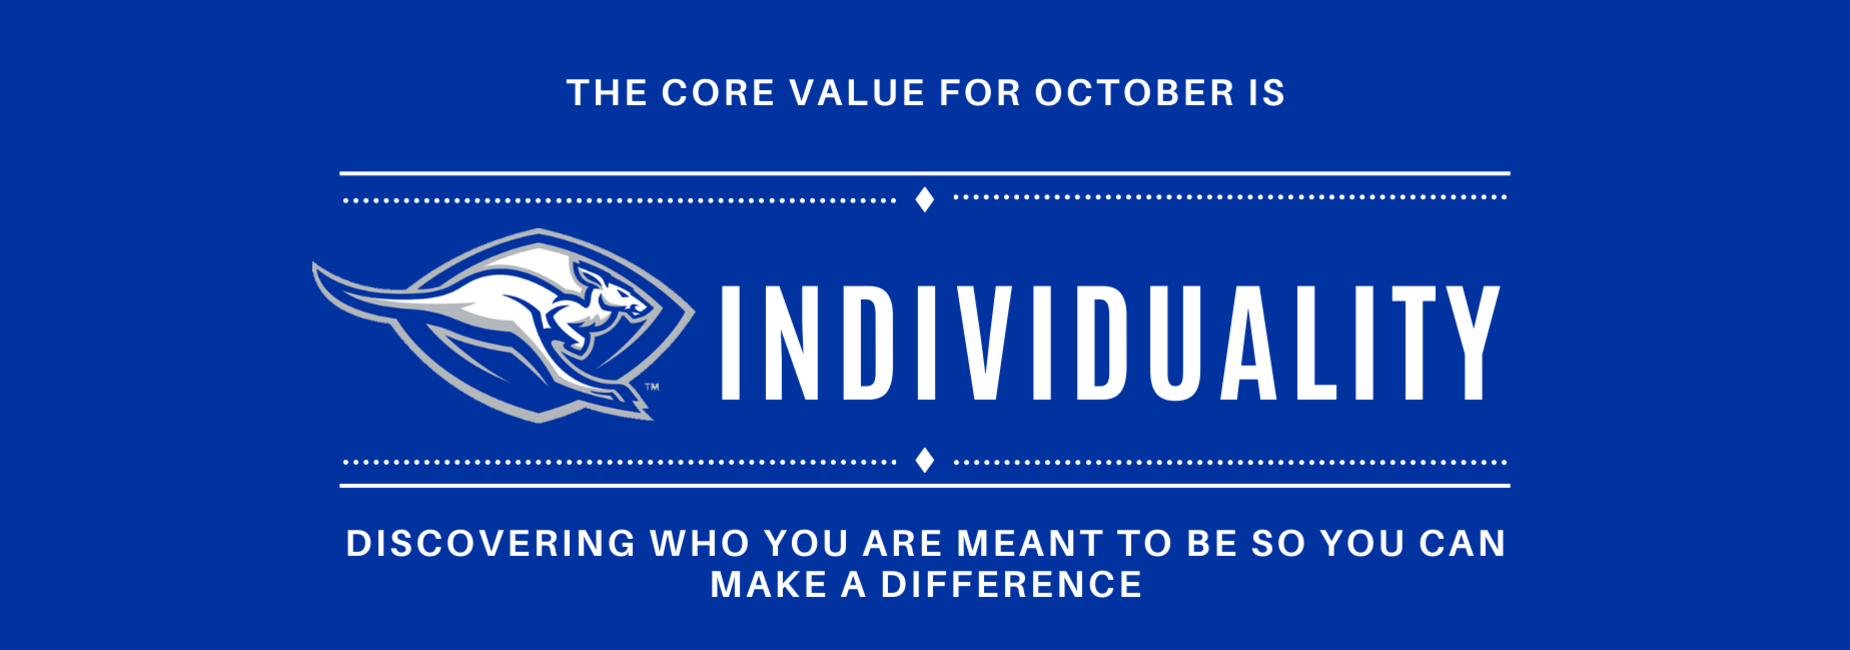 The Core Value for October is Individuality   Discovering who you are meant to be so you can make a difference